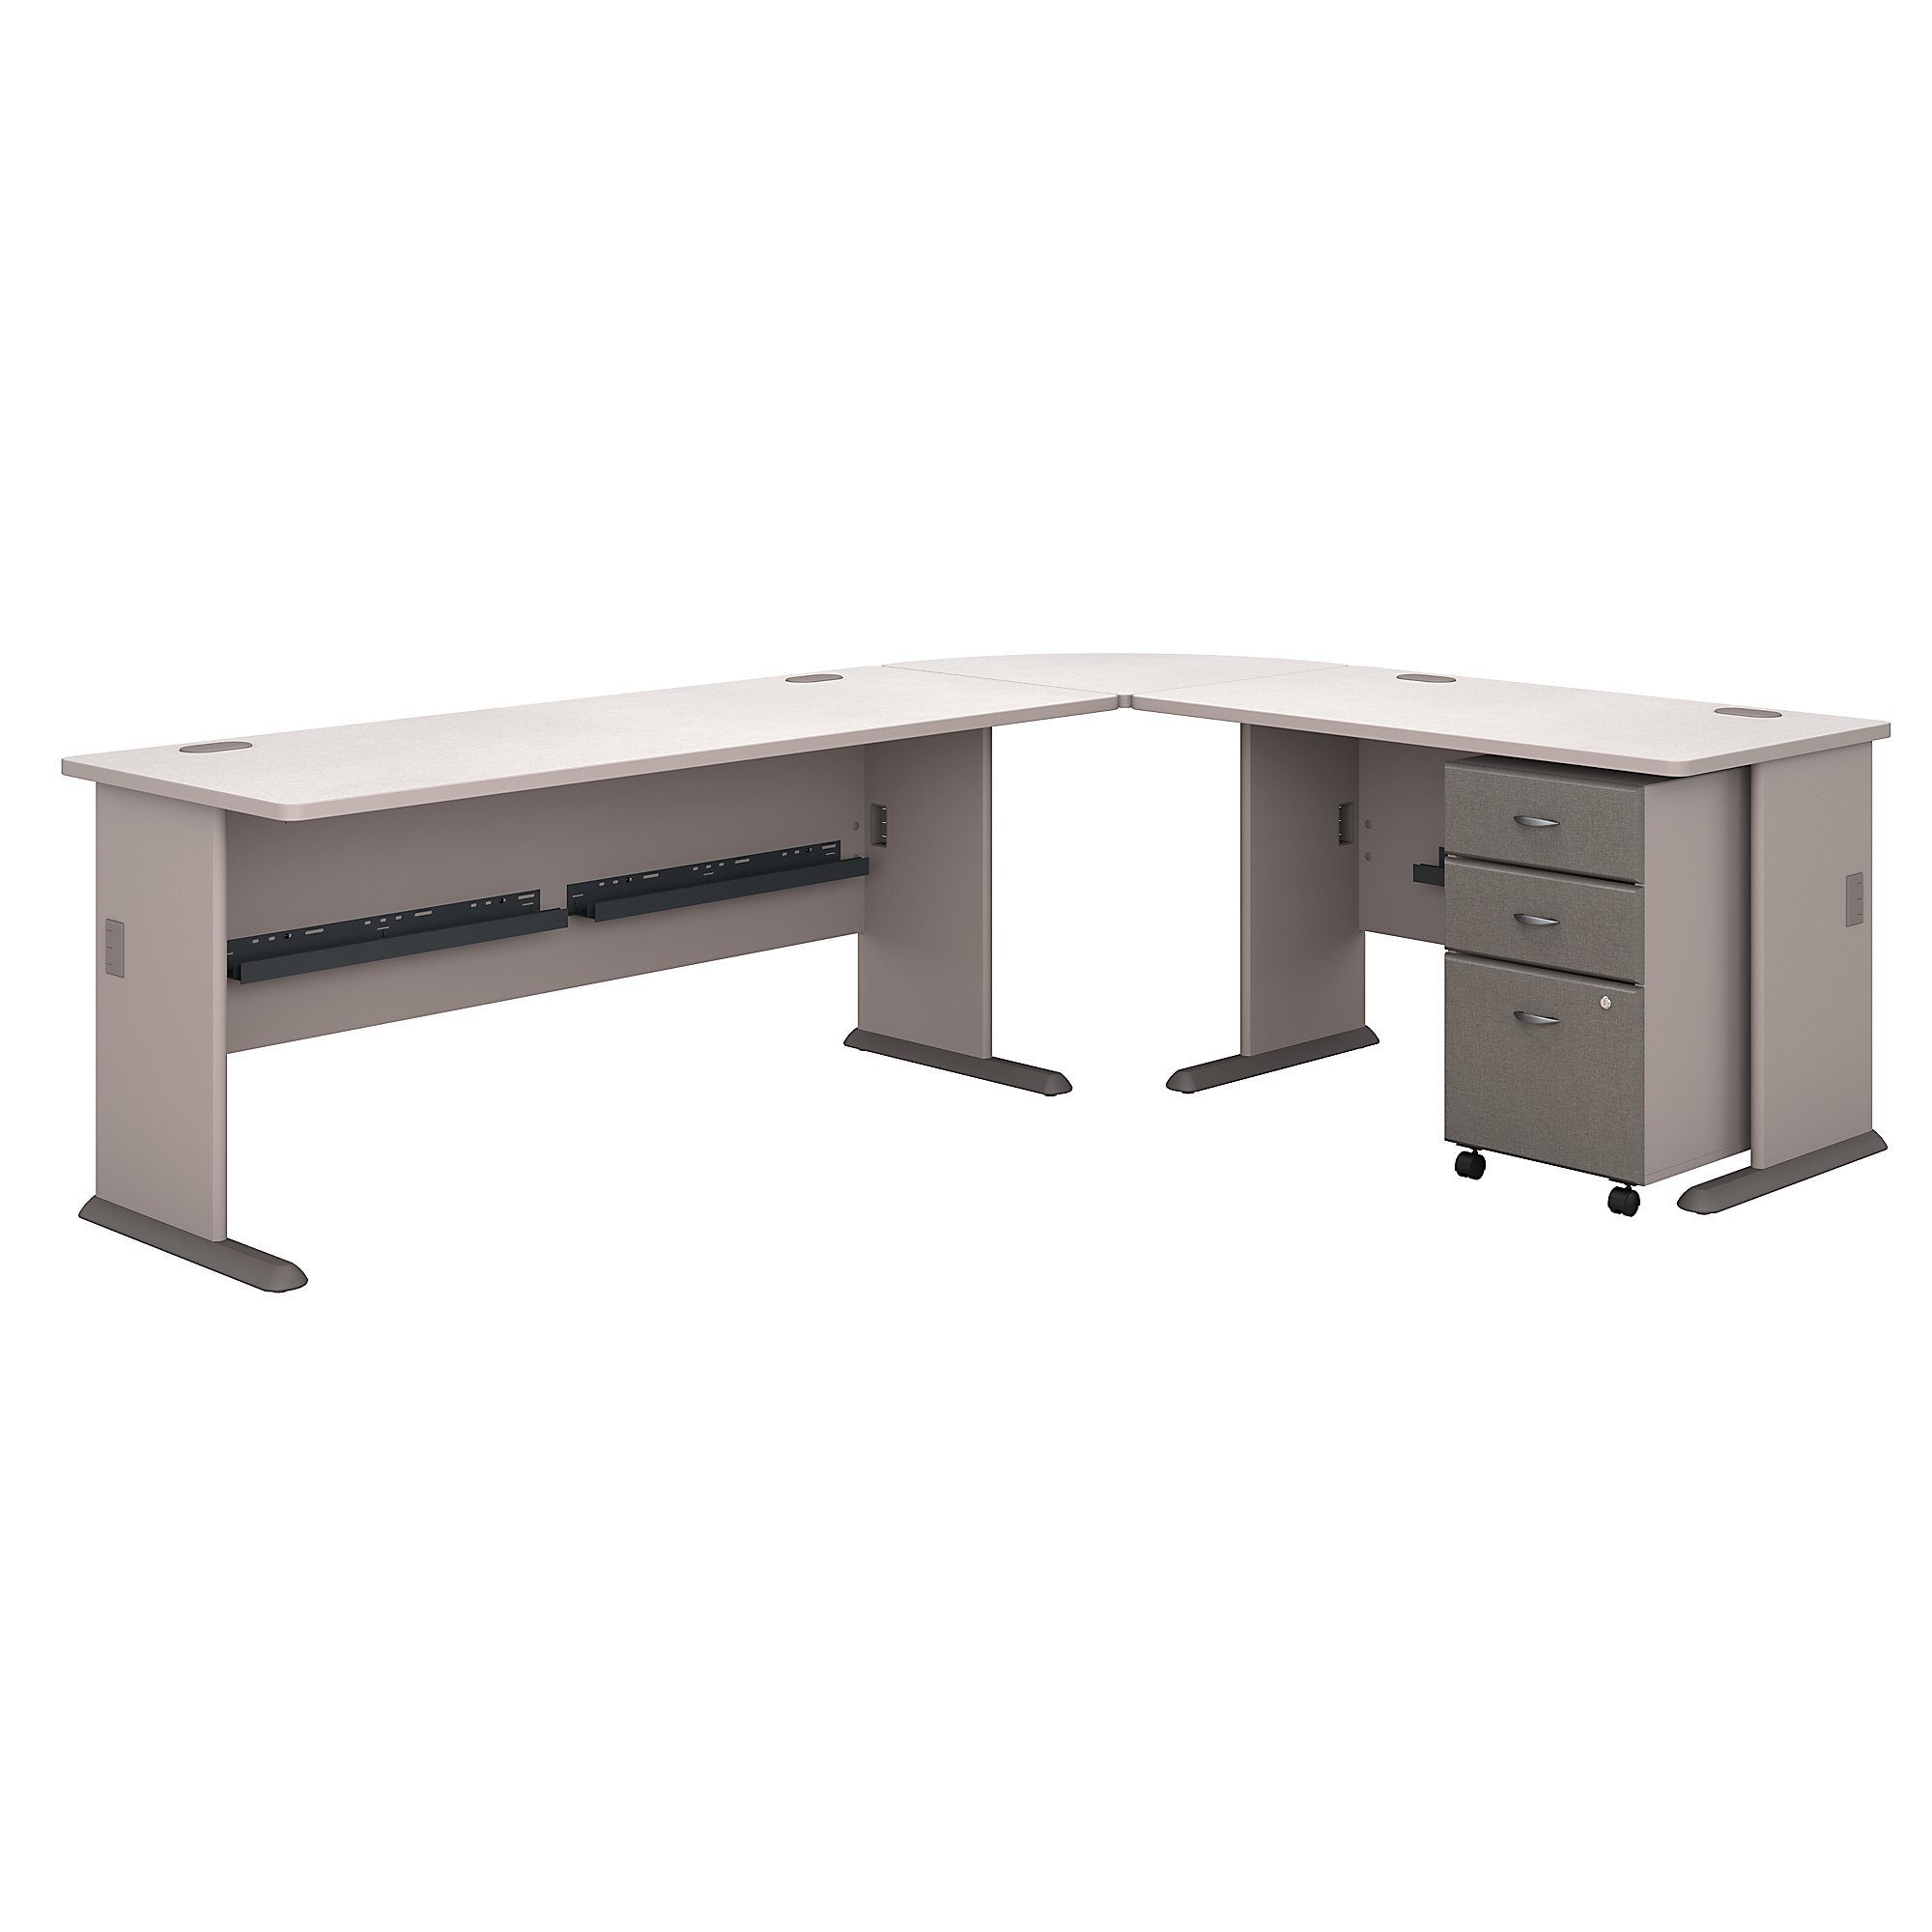 Bush Business Furniture Series A 99W x 75D L Shaped Desk with Mobile File Cabinet in Pewter and White Spectrum by Bush Business Furniture